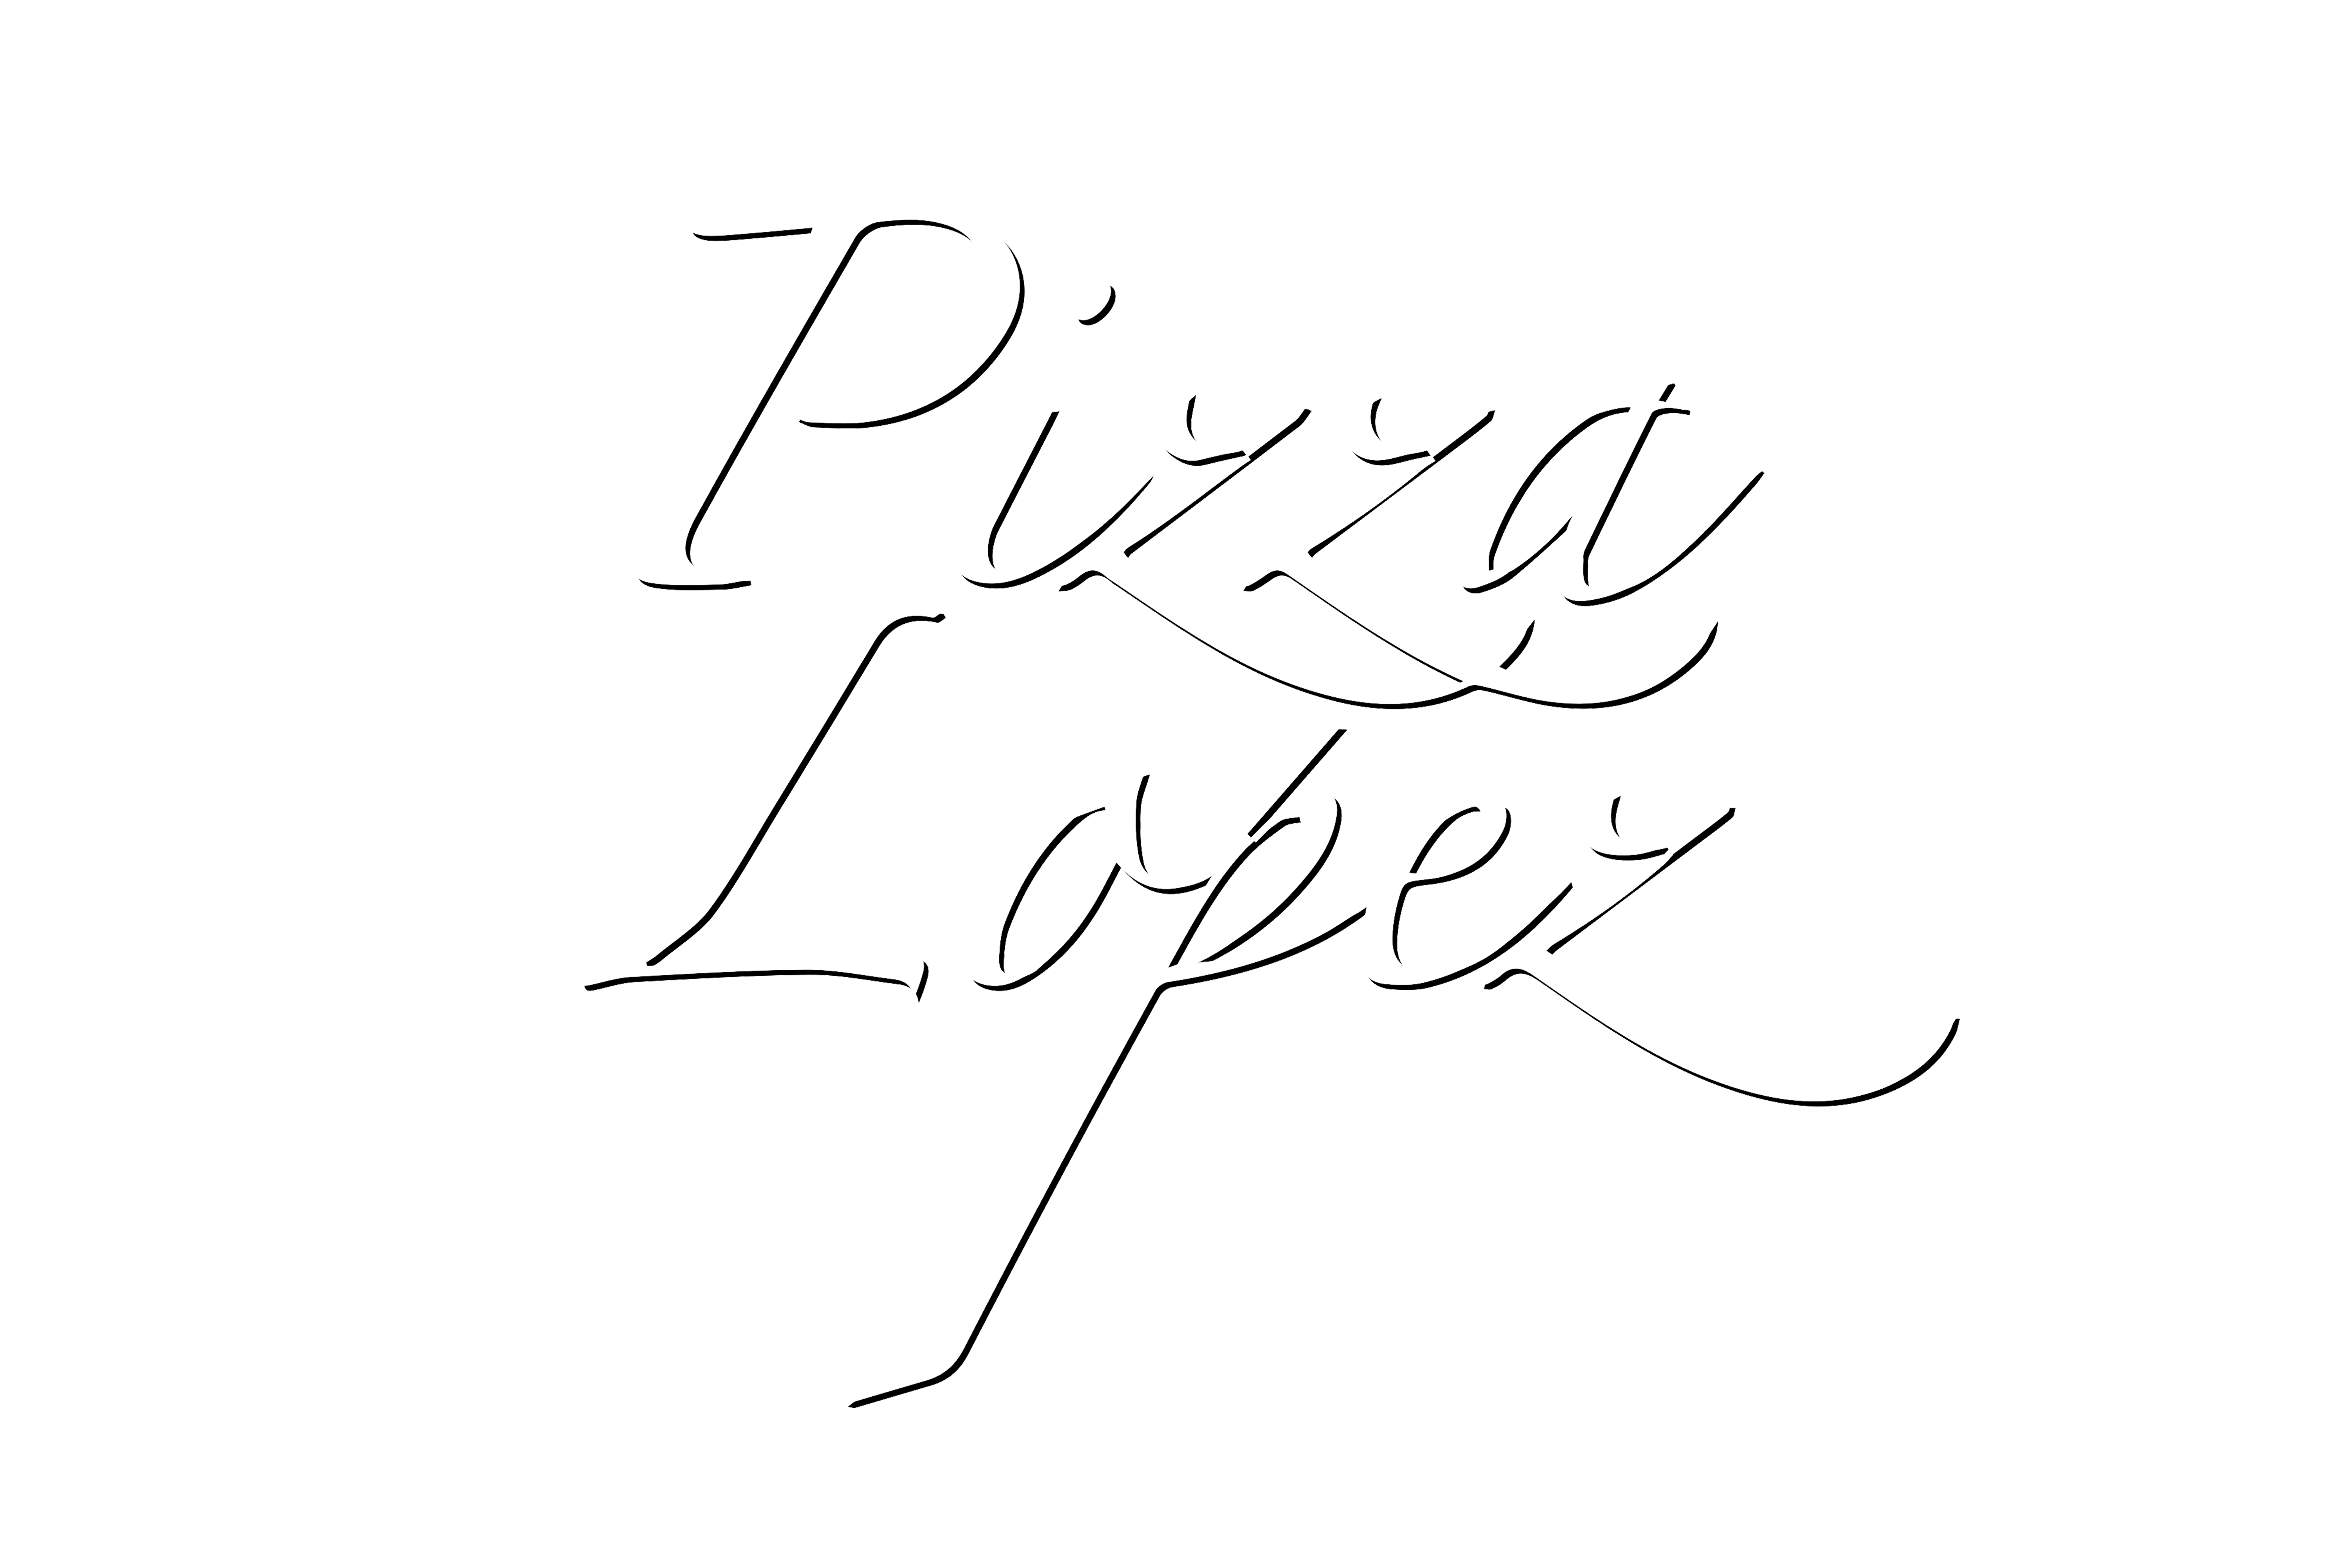 Pizza Lopez